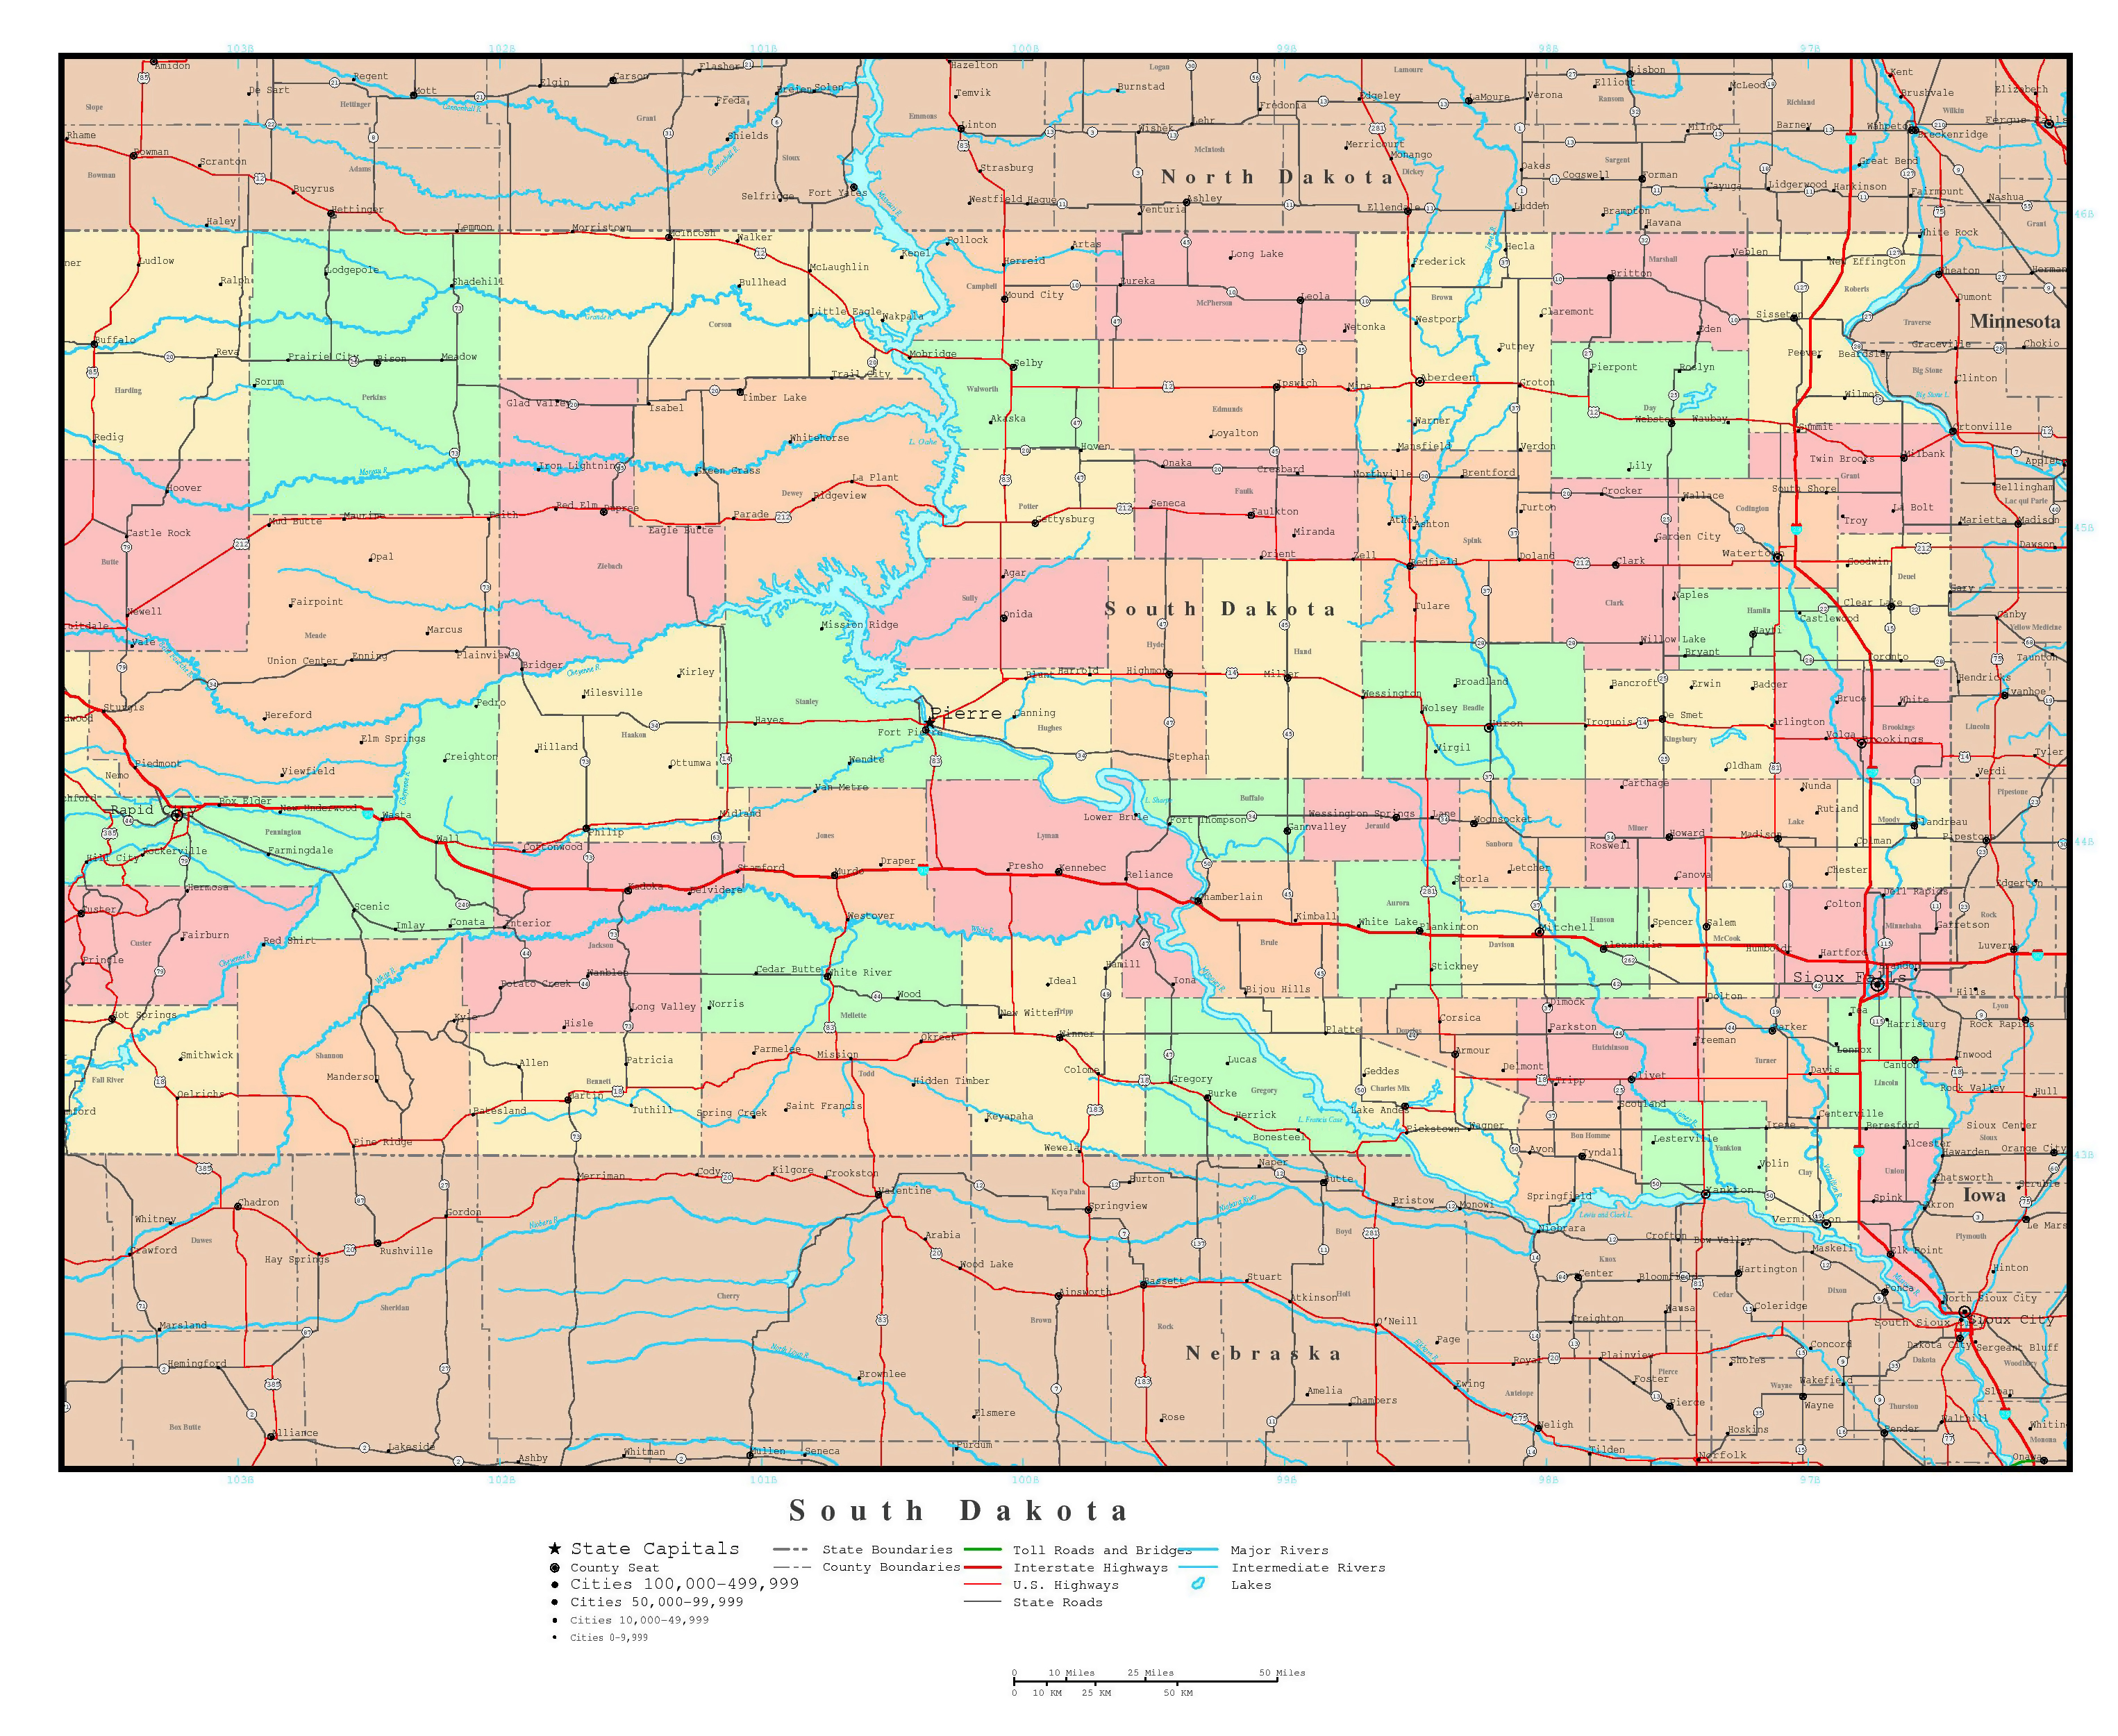 Large Detailed Administrative Map Of South Dakota State With Roads - Map of south dakota